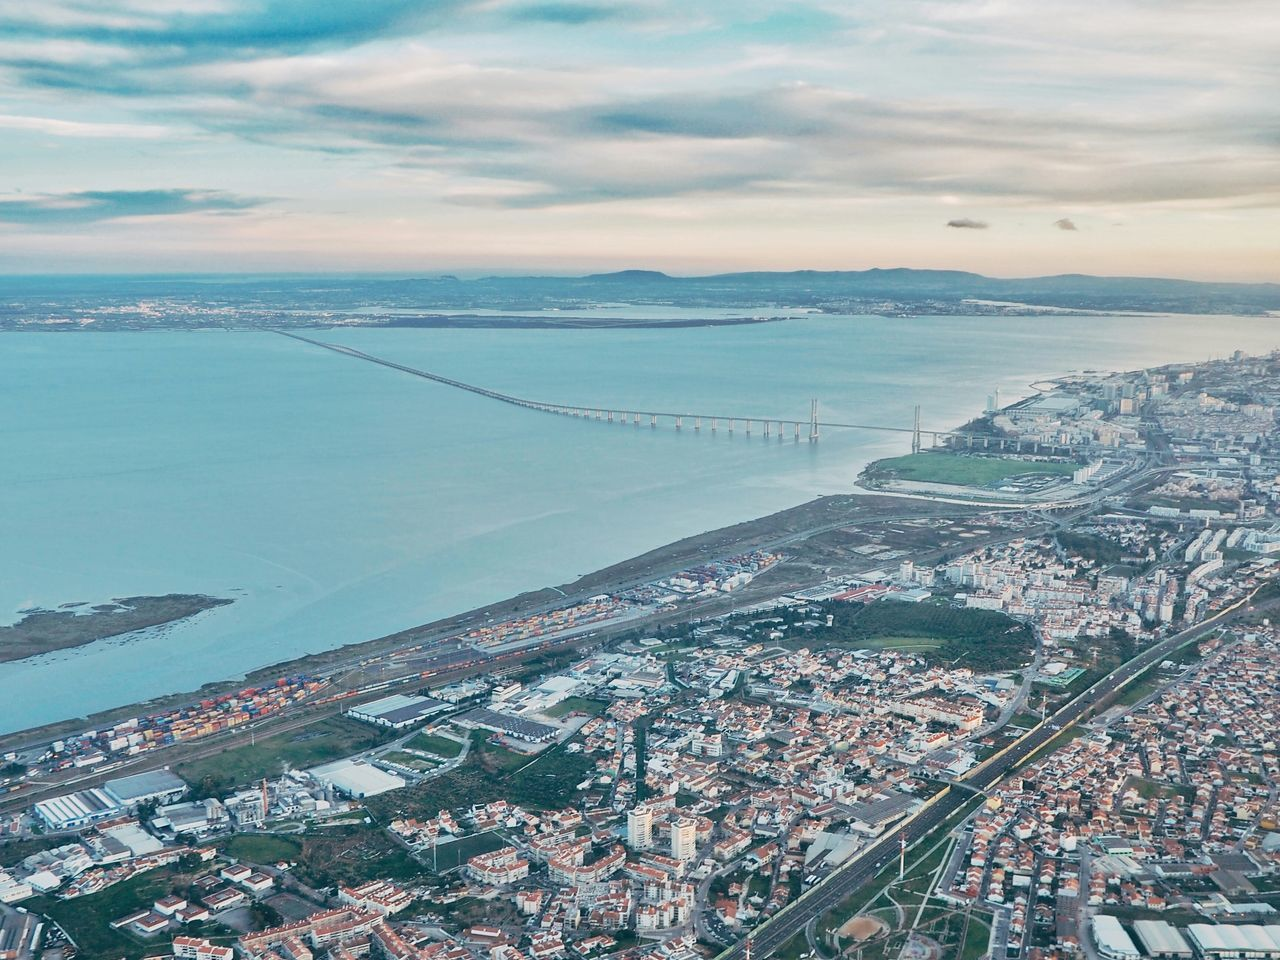 Business Finance And Industry Cityscape Sea Aerial View City Outdoors Sky No People Cloud - Sky Sunset Beach Architecture Day Horizon Over Water Skyscraper Blue Water Travel Destinations Scenics Building Exterior Airplaneview Lisbon Portugal Lisbon View Scenic View Neighborhood Map